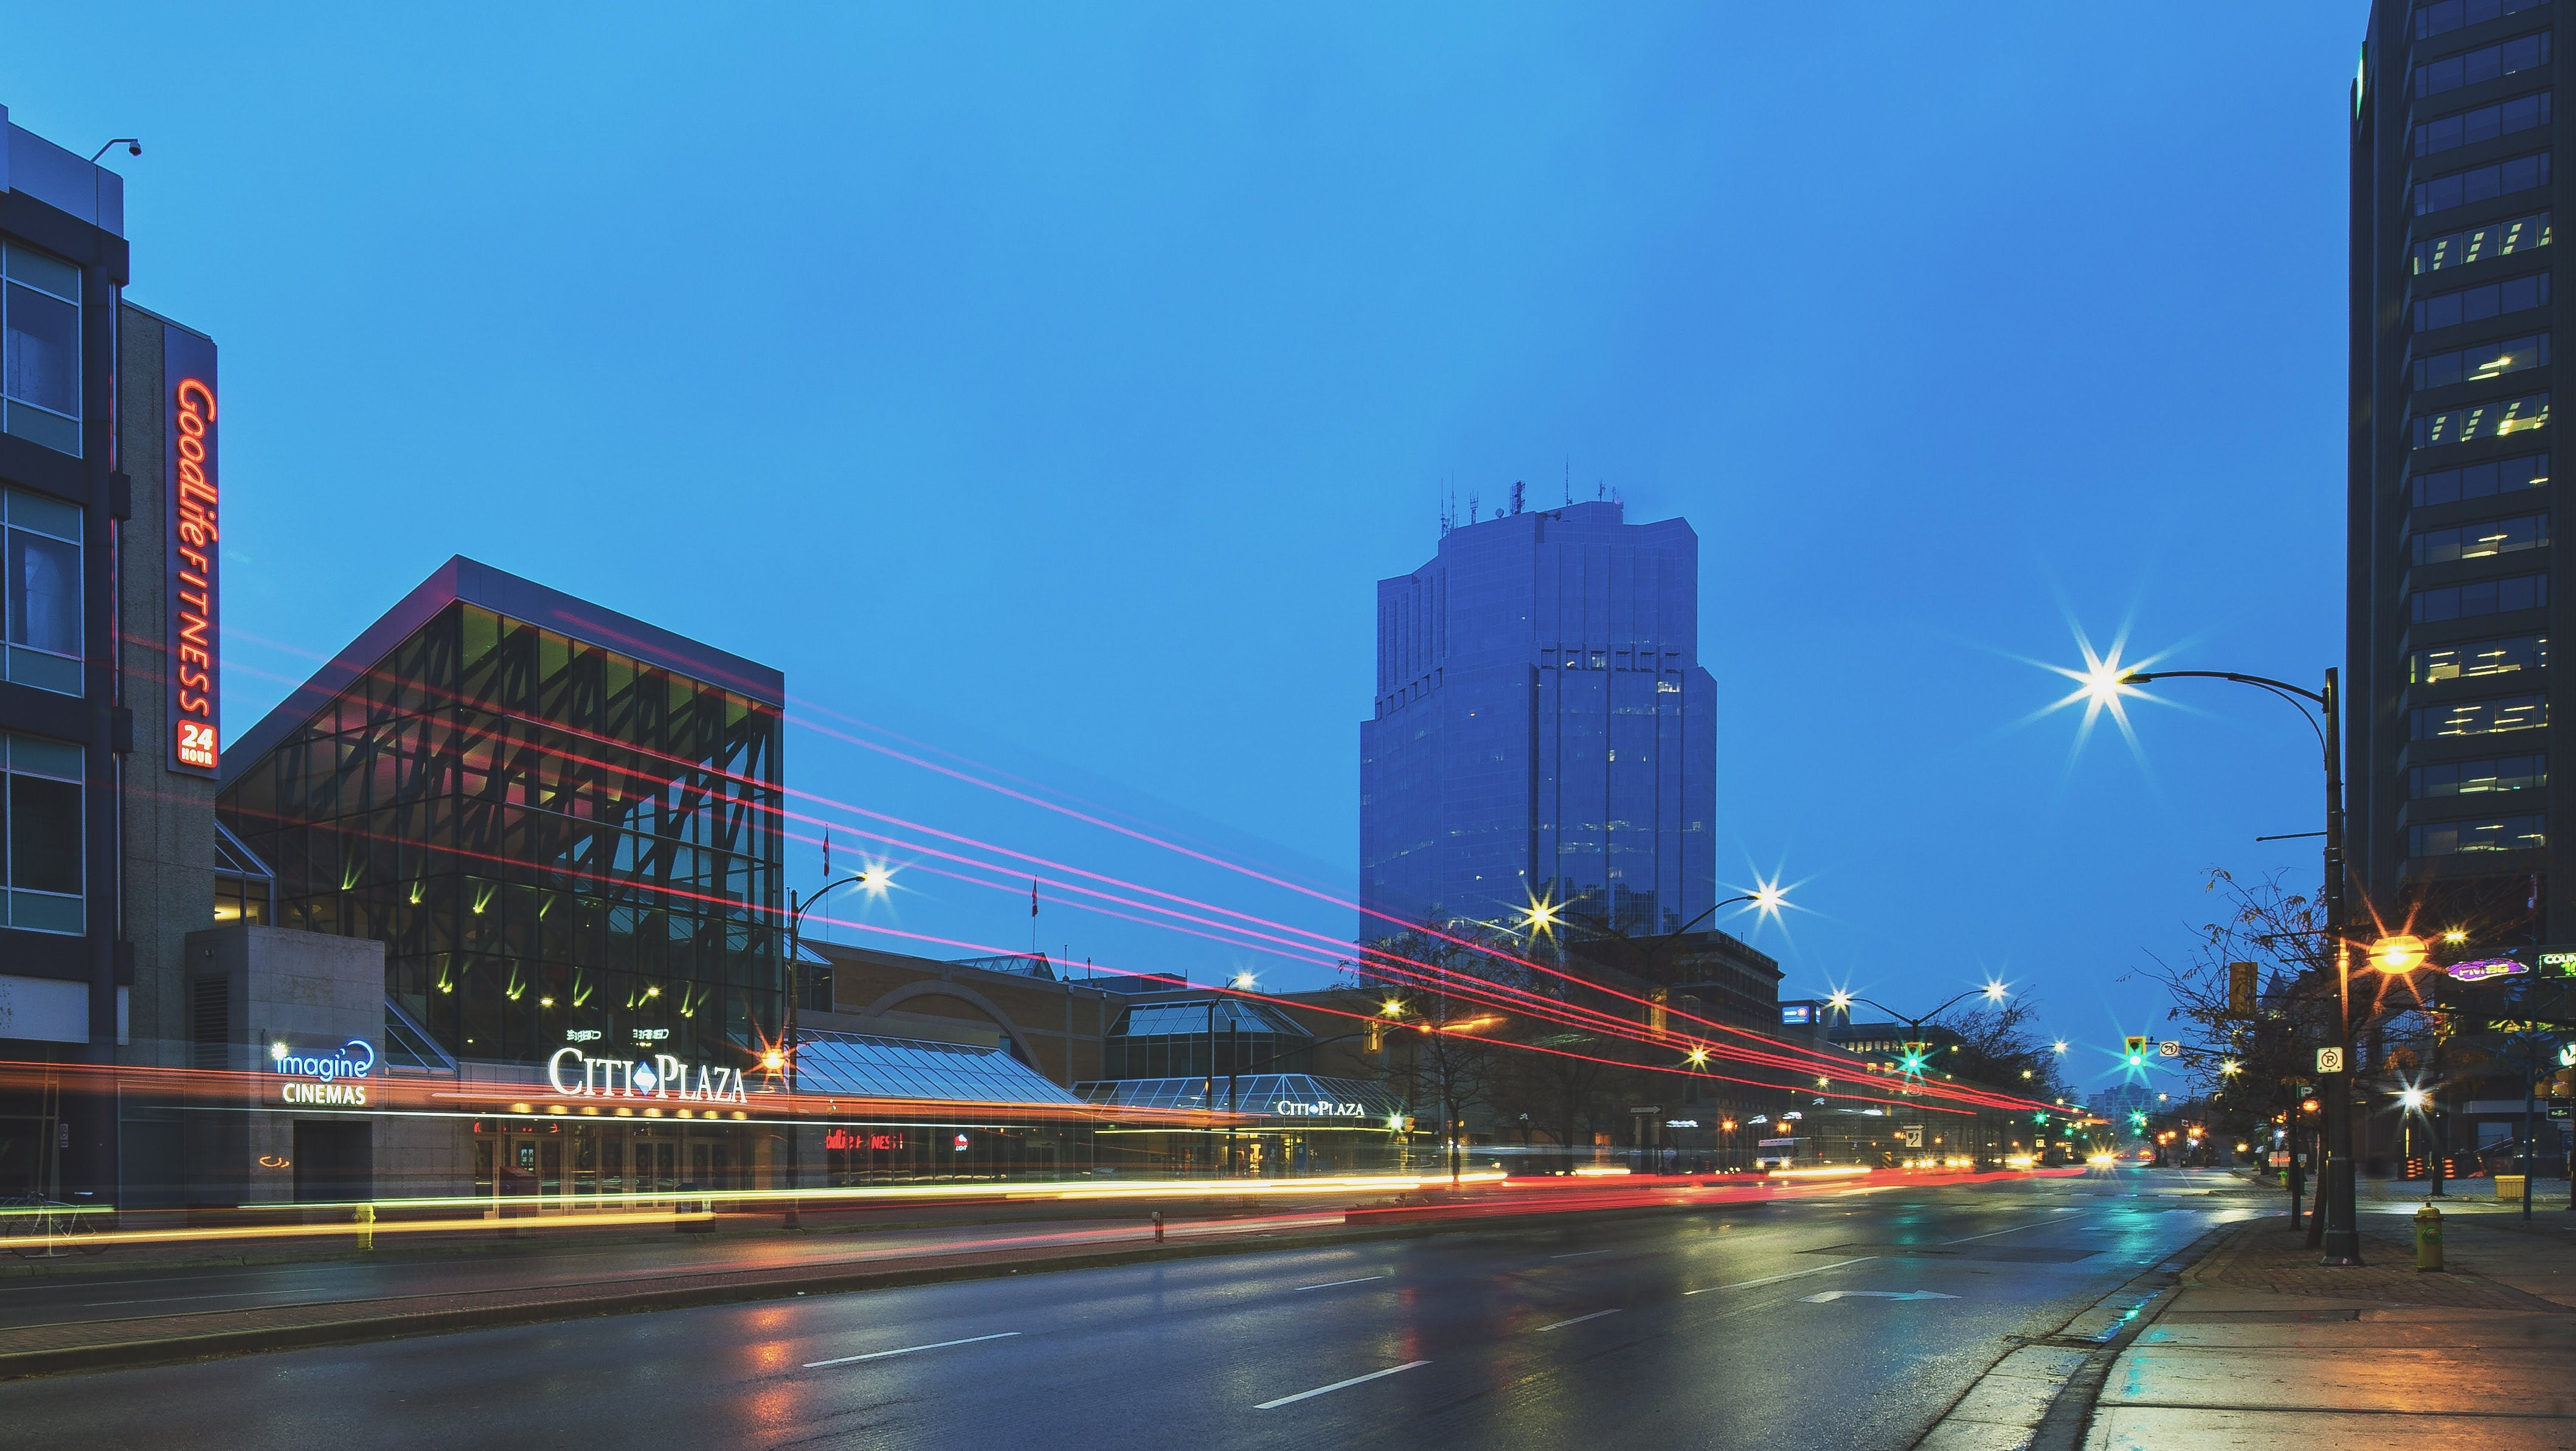 Long-exposure Photography of Highway During Evening